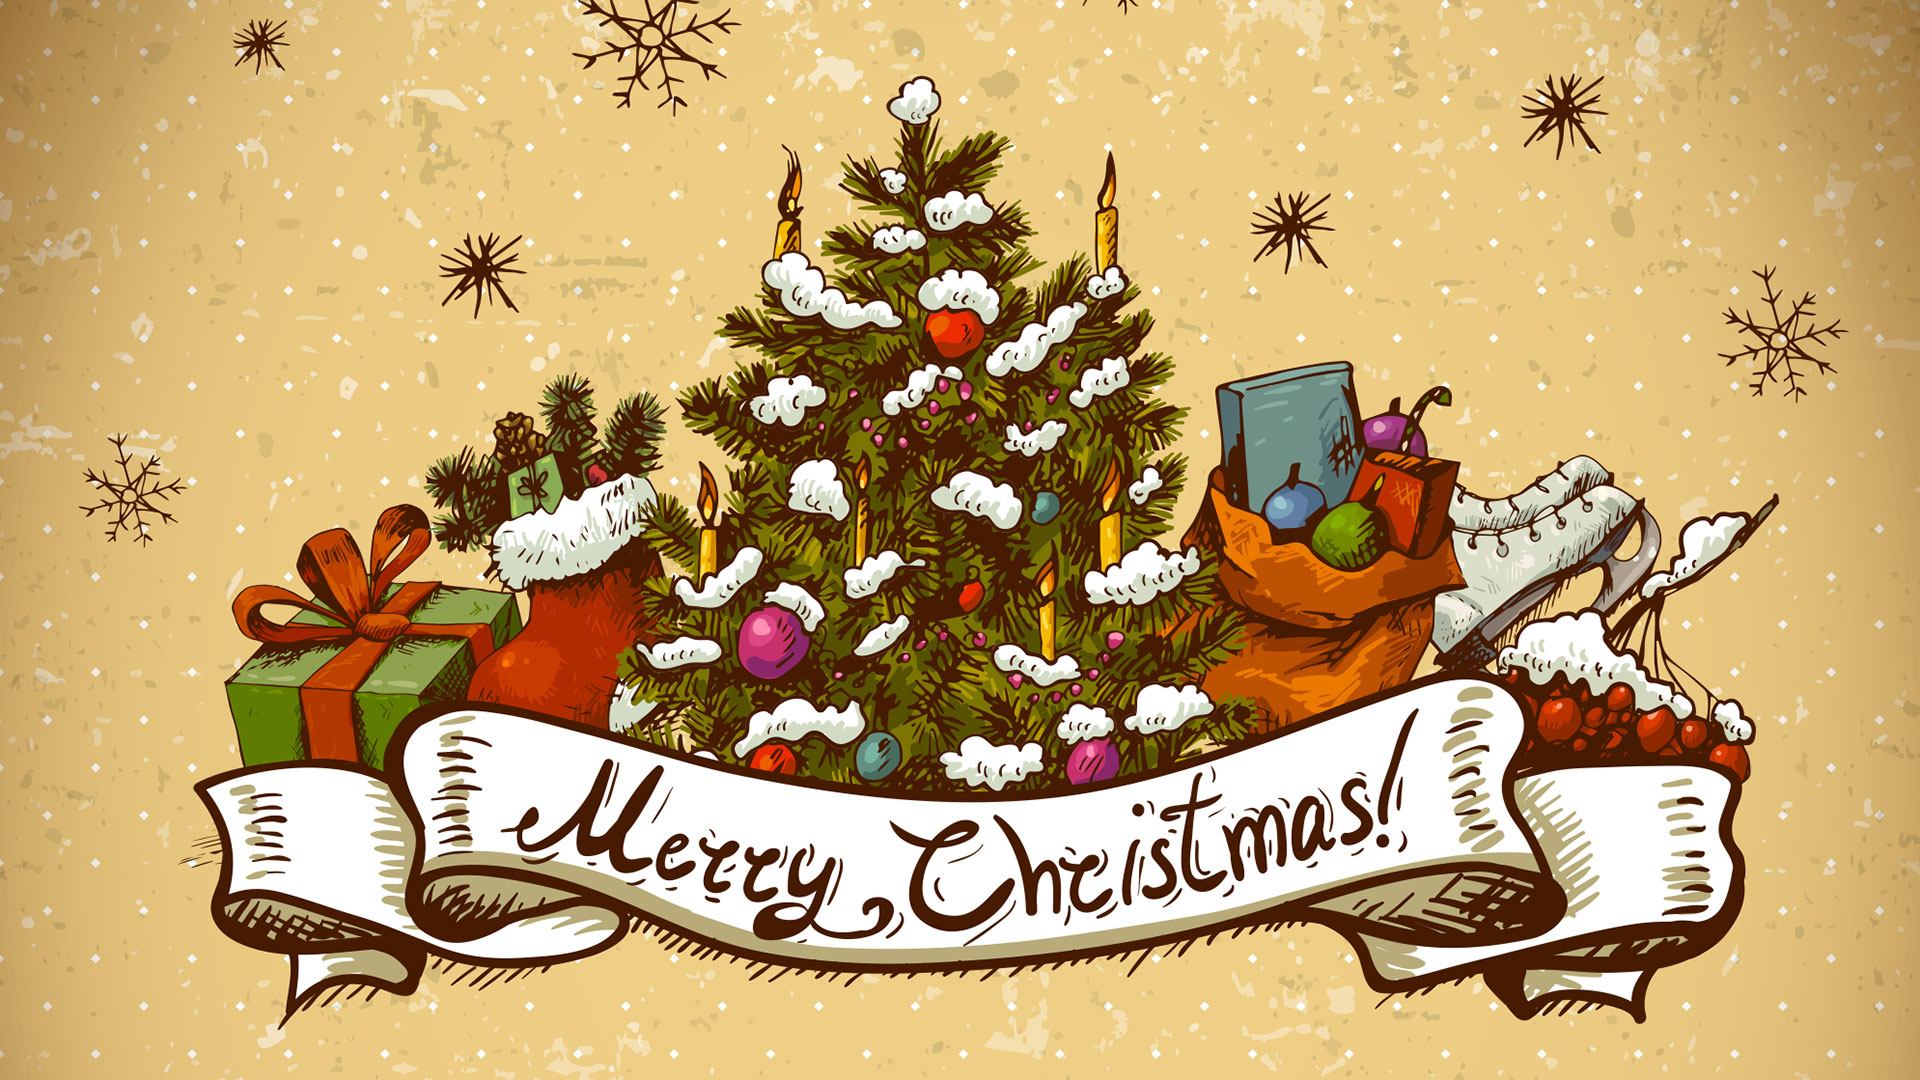 Best free christmas vectors for your festive designs creative bloq biocorpaavc